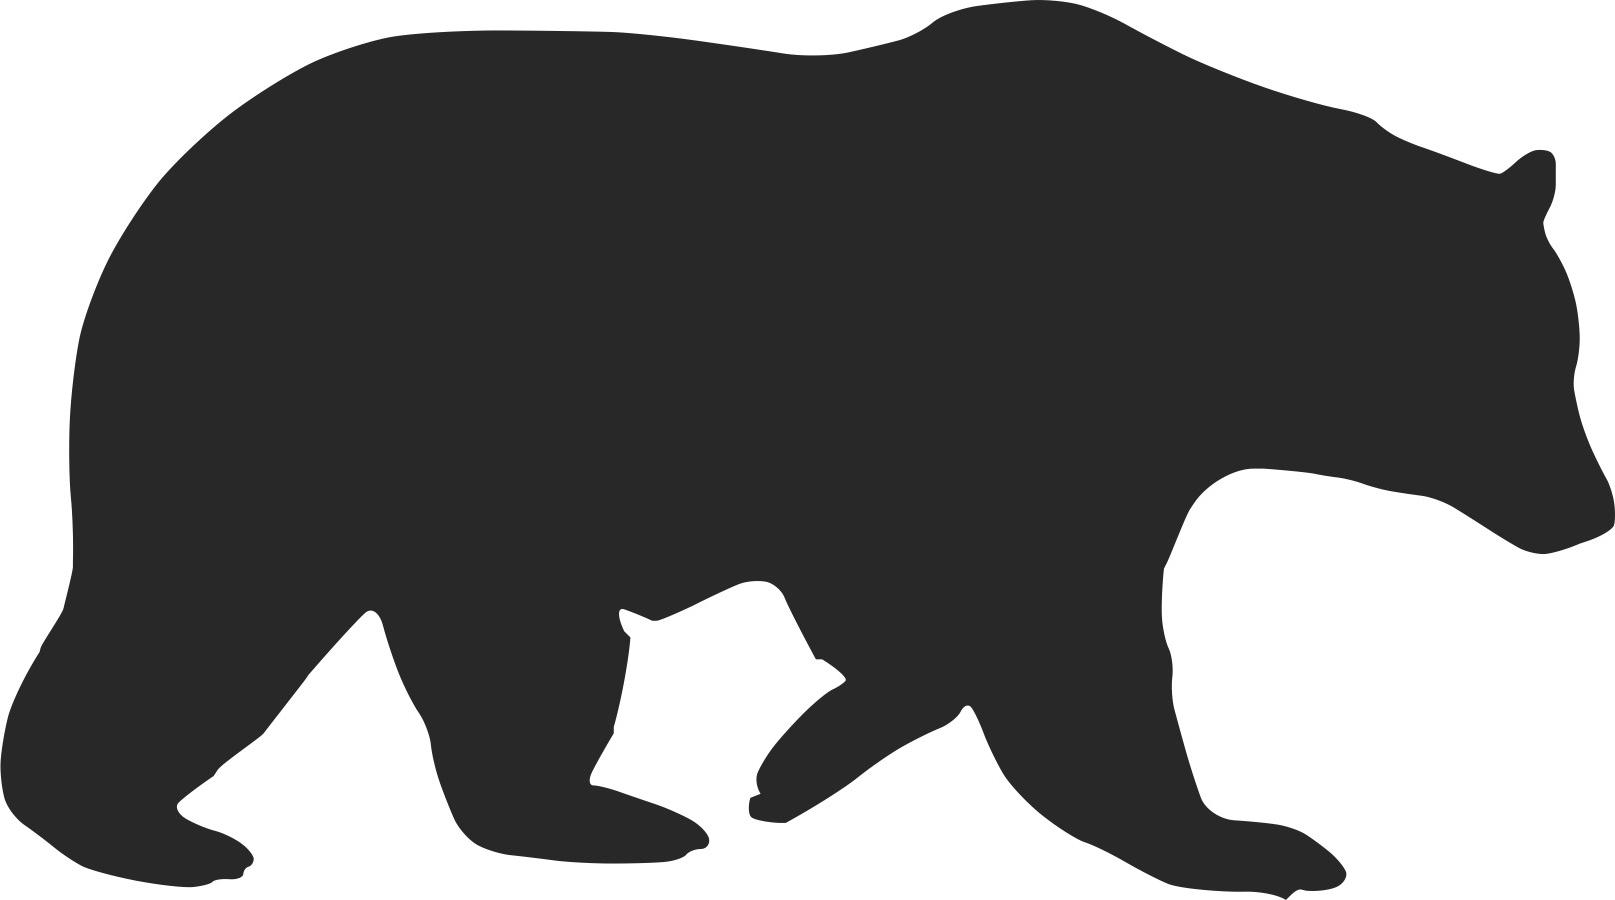 bear silhouette bear silhouette download free vectors clipart graphics bear silhouette